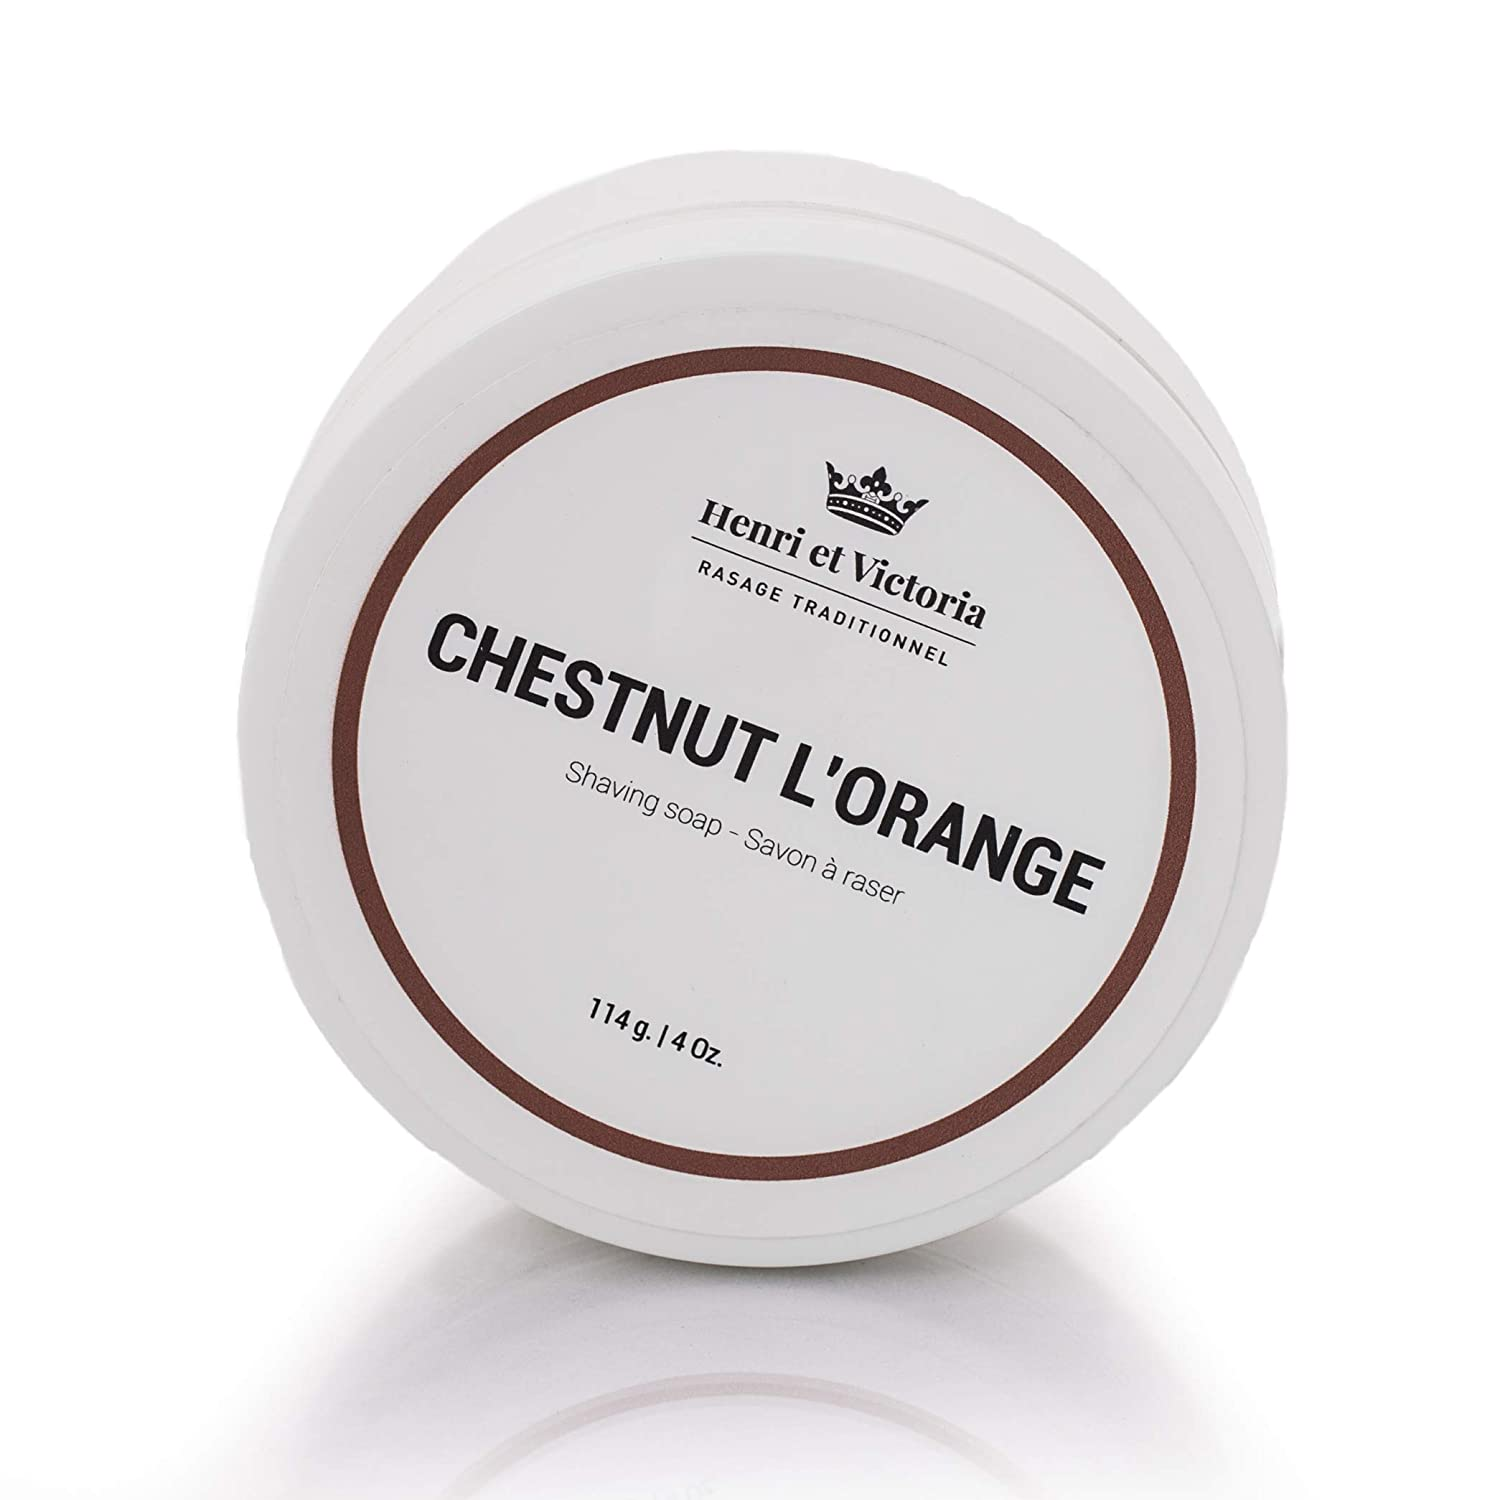 Chestnut L'Orange Shaving Soap for men| Hand Made in CANADA by Henri et Victoria |Moisturizing, Ultra Glide, Cushioning, Easy Lather, Prevent Razor Burn and Dry Skin | 114 g (4 oz) Henri et Victoria Inc.